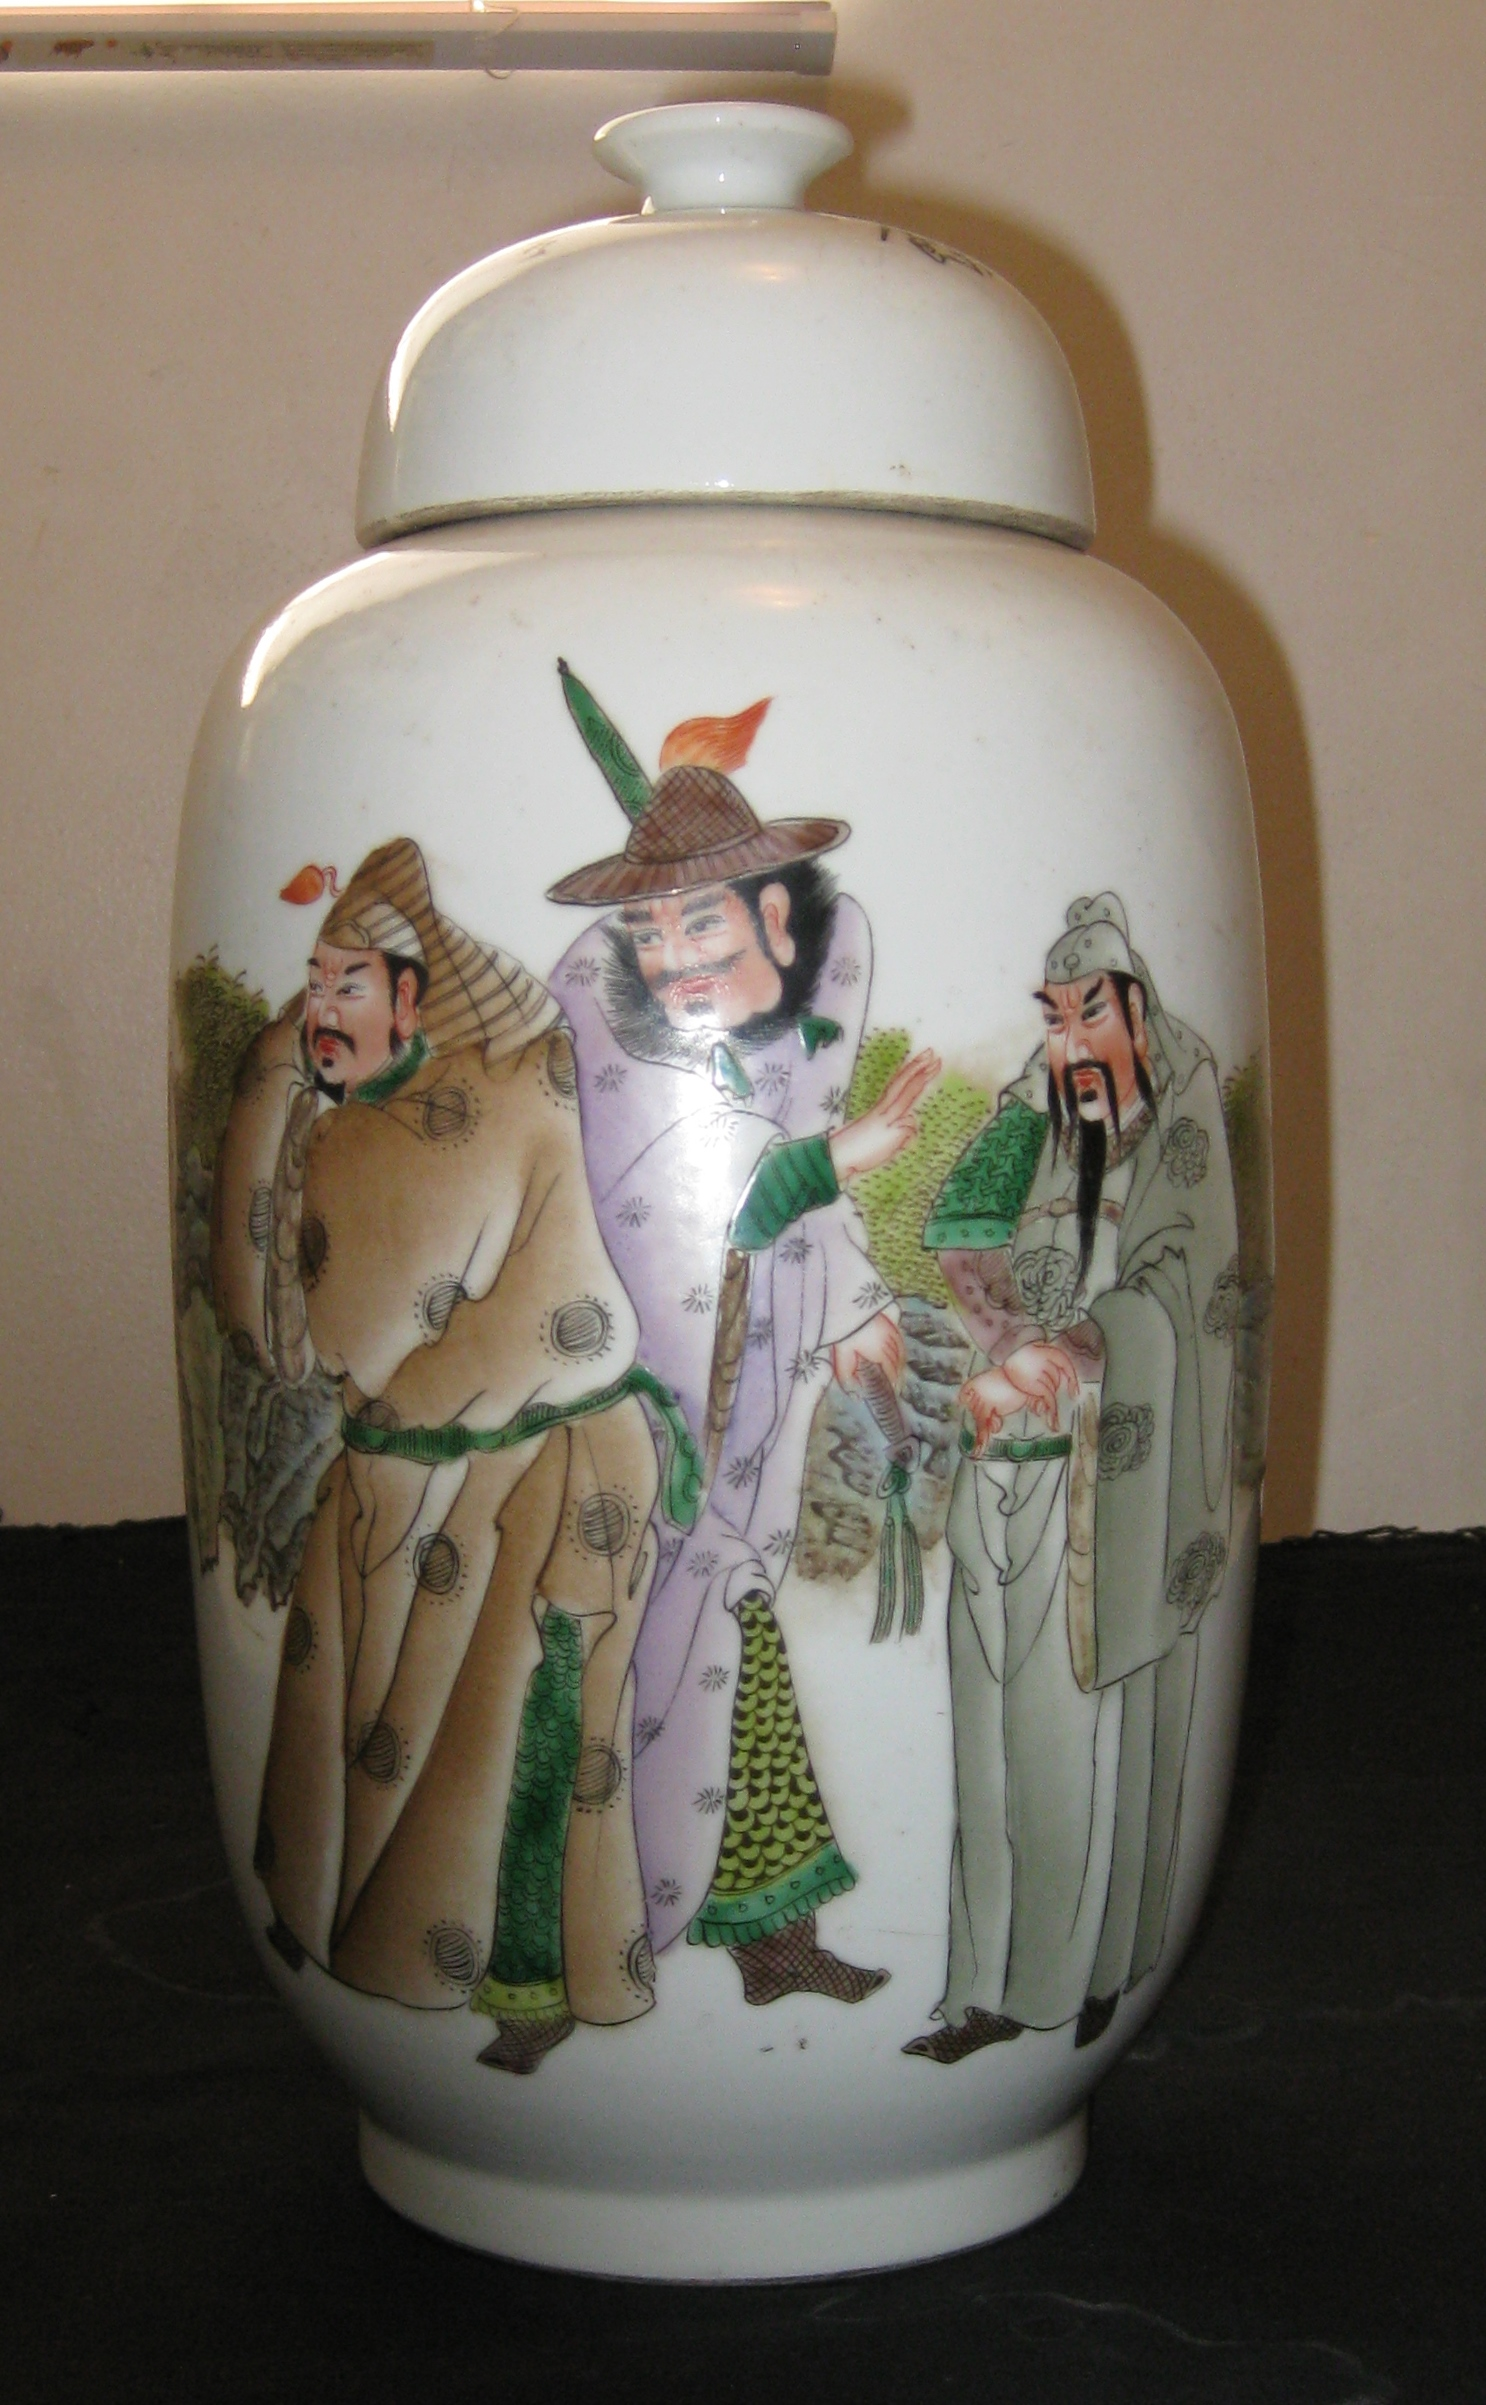 CHINESE REPUBLIC PERIOD, ARTIST WANG DAFAN WORK ON PORCELAIN VASE, CIRCA 1931.